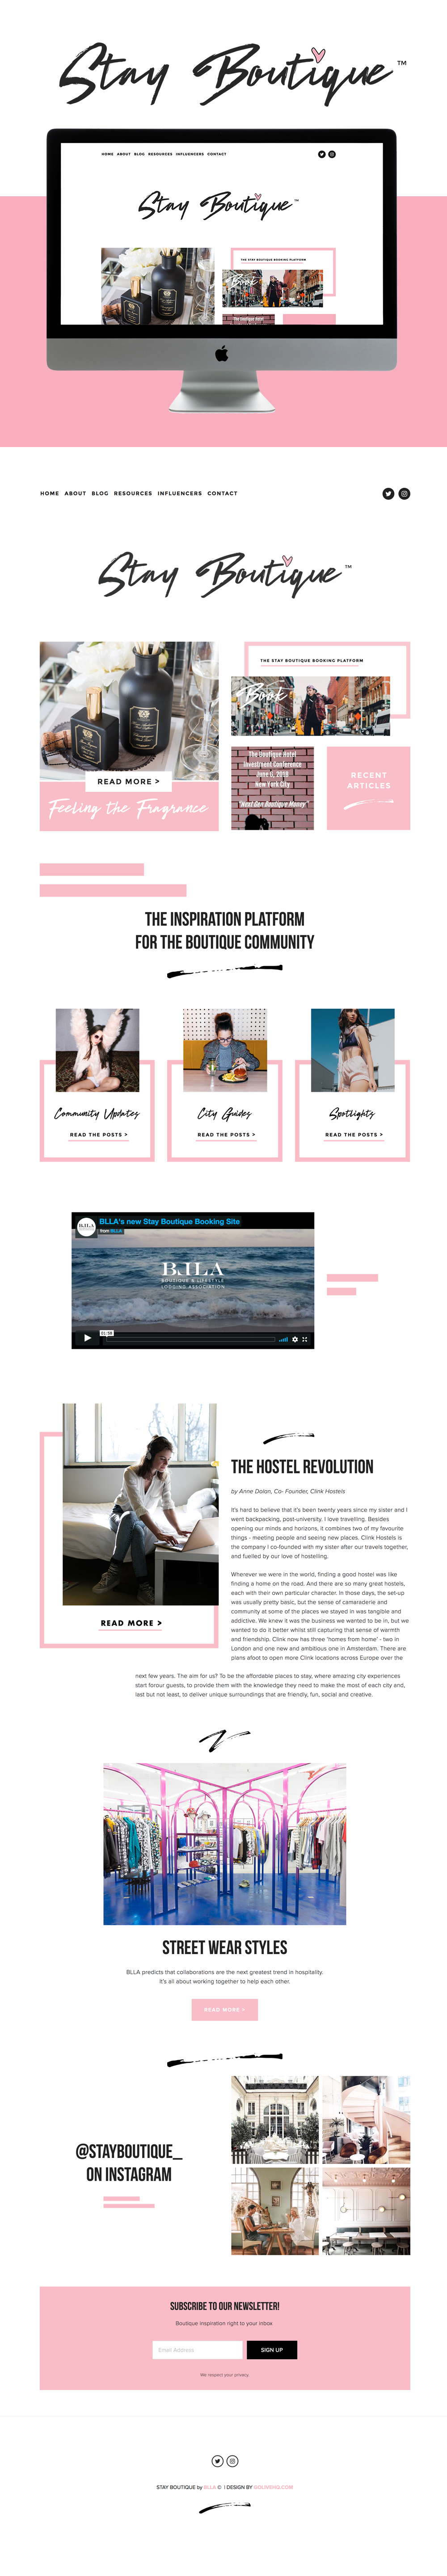 Boutique website inspiration | Go live Hq